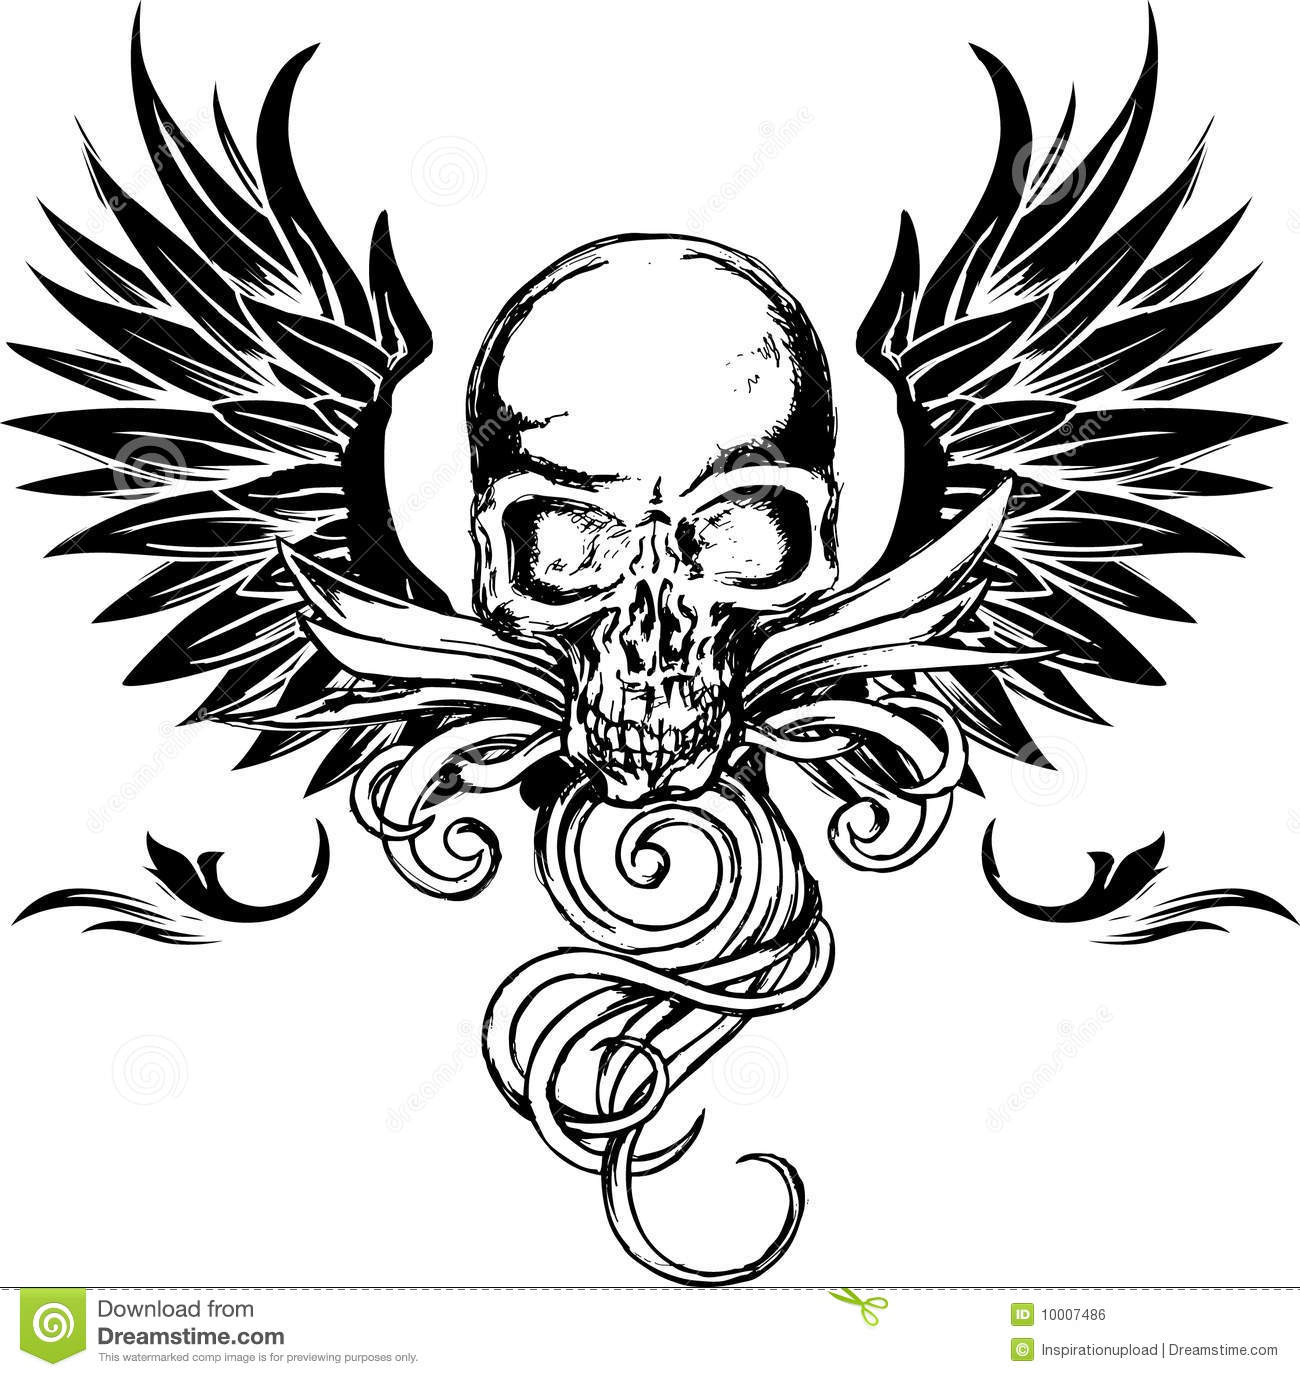 Detailed Skull With Wings Royalty Free Stock Image